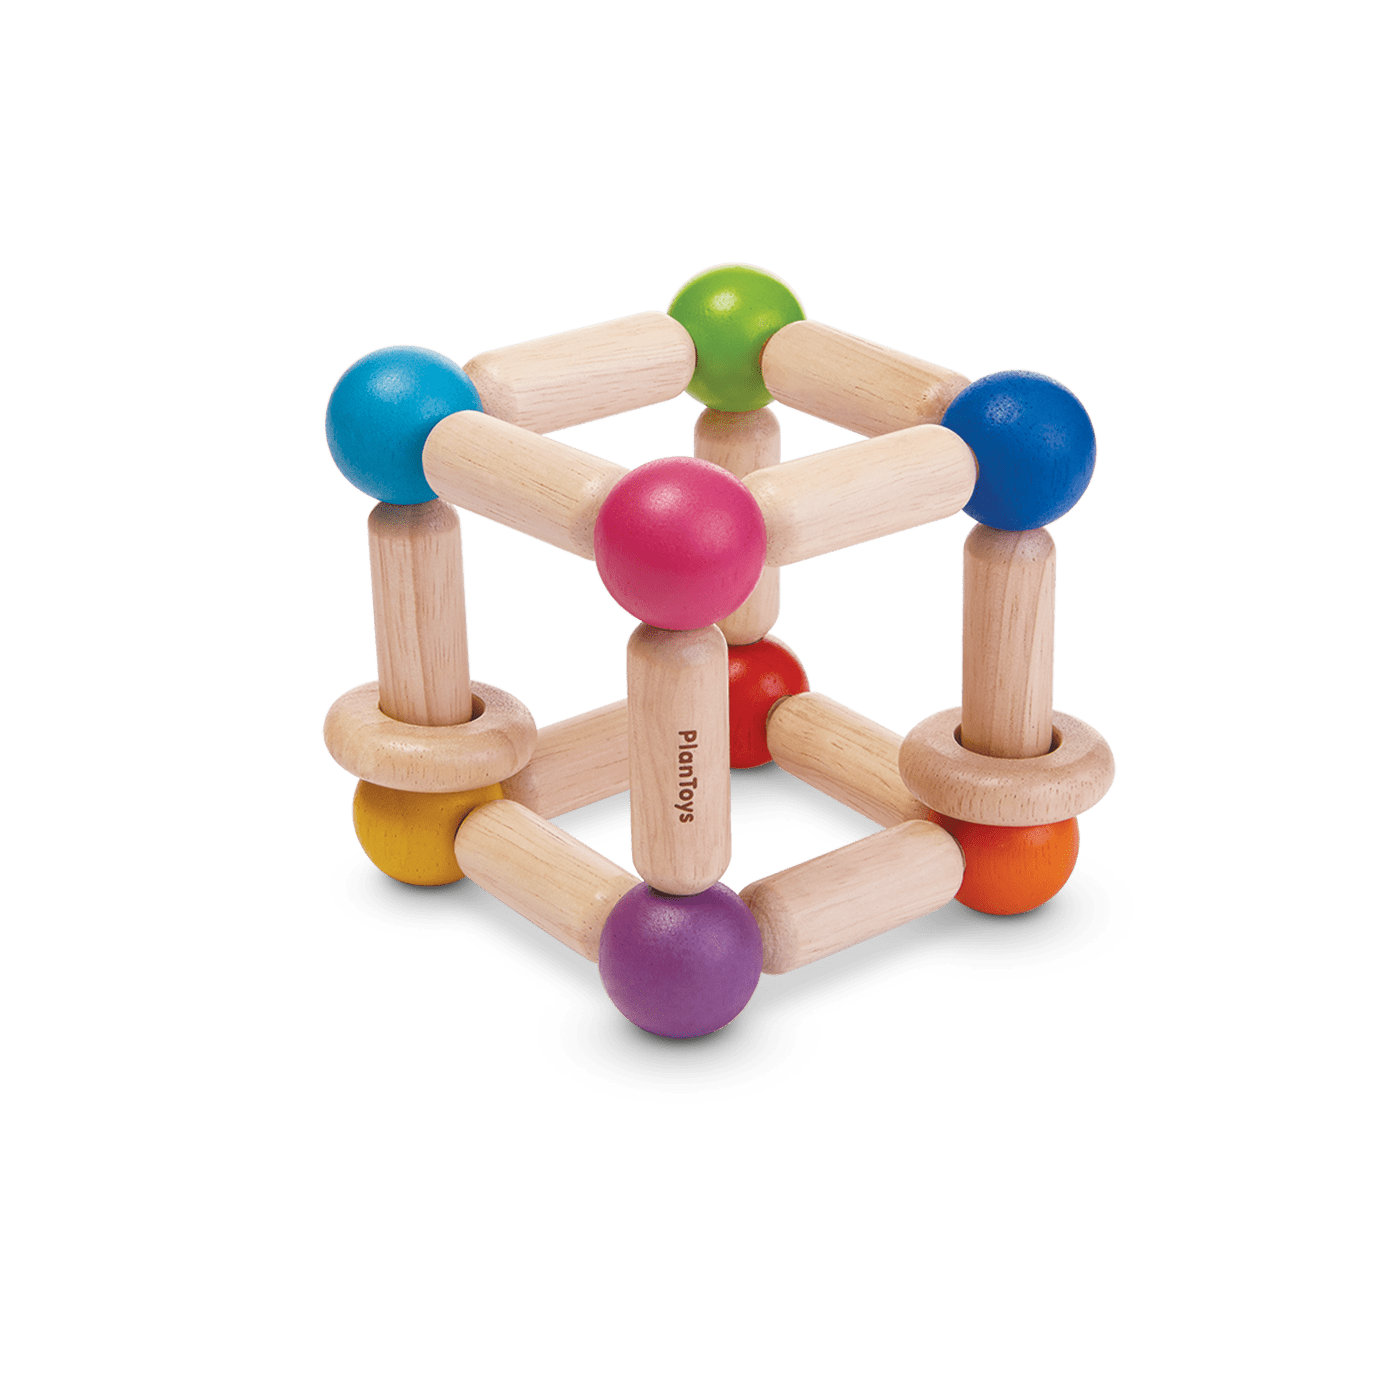 5245_PlanToys_SQUARE_CLUTCHING_TOY_Babies_Fine_Motor_Coordination_Auditory_Language_and_Communications_6m_Wooden_toys_Education_toys_Safety_Toys_Non-toxic_0.png